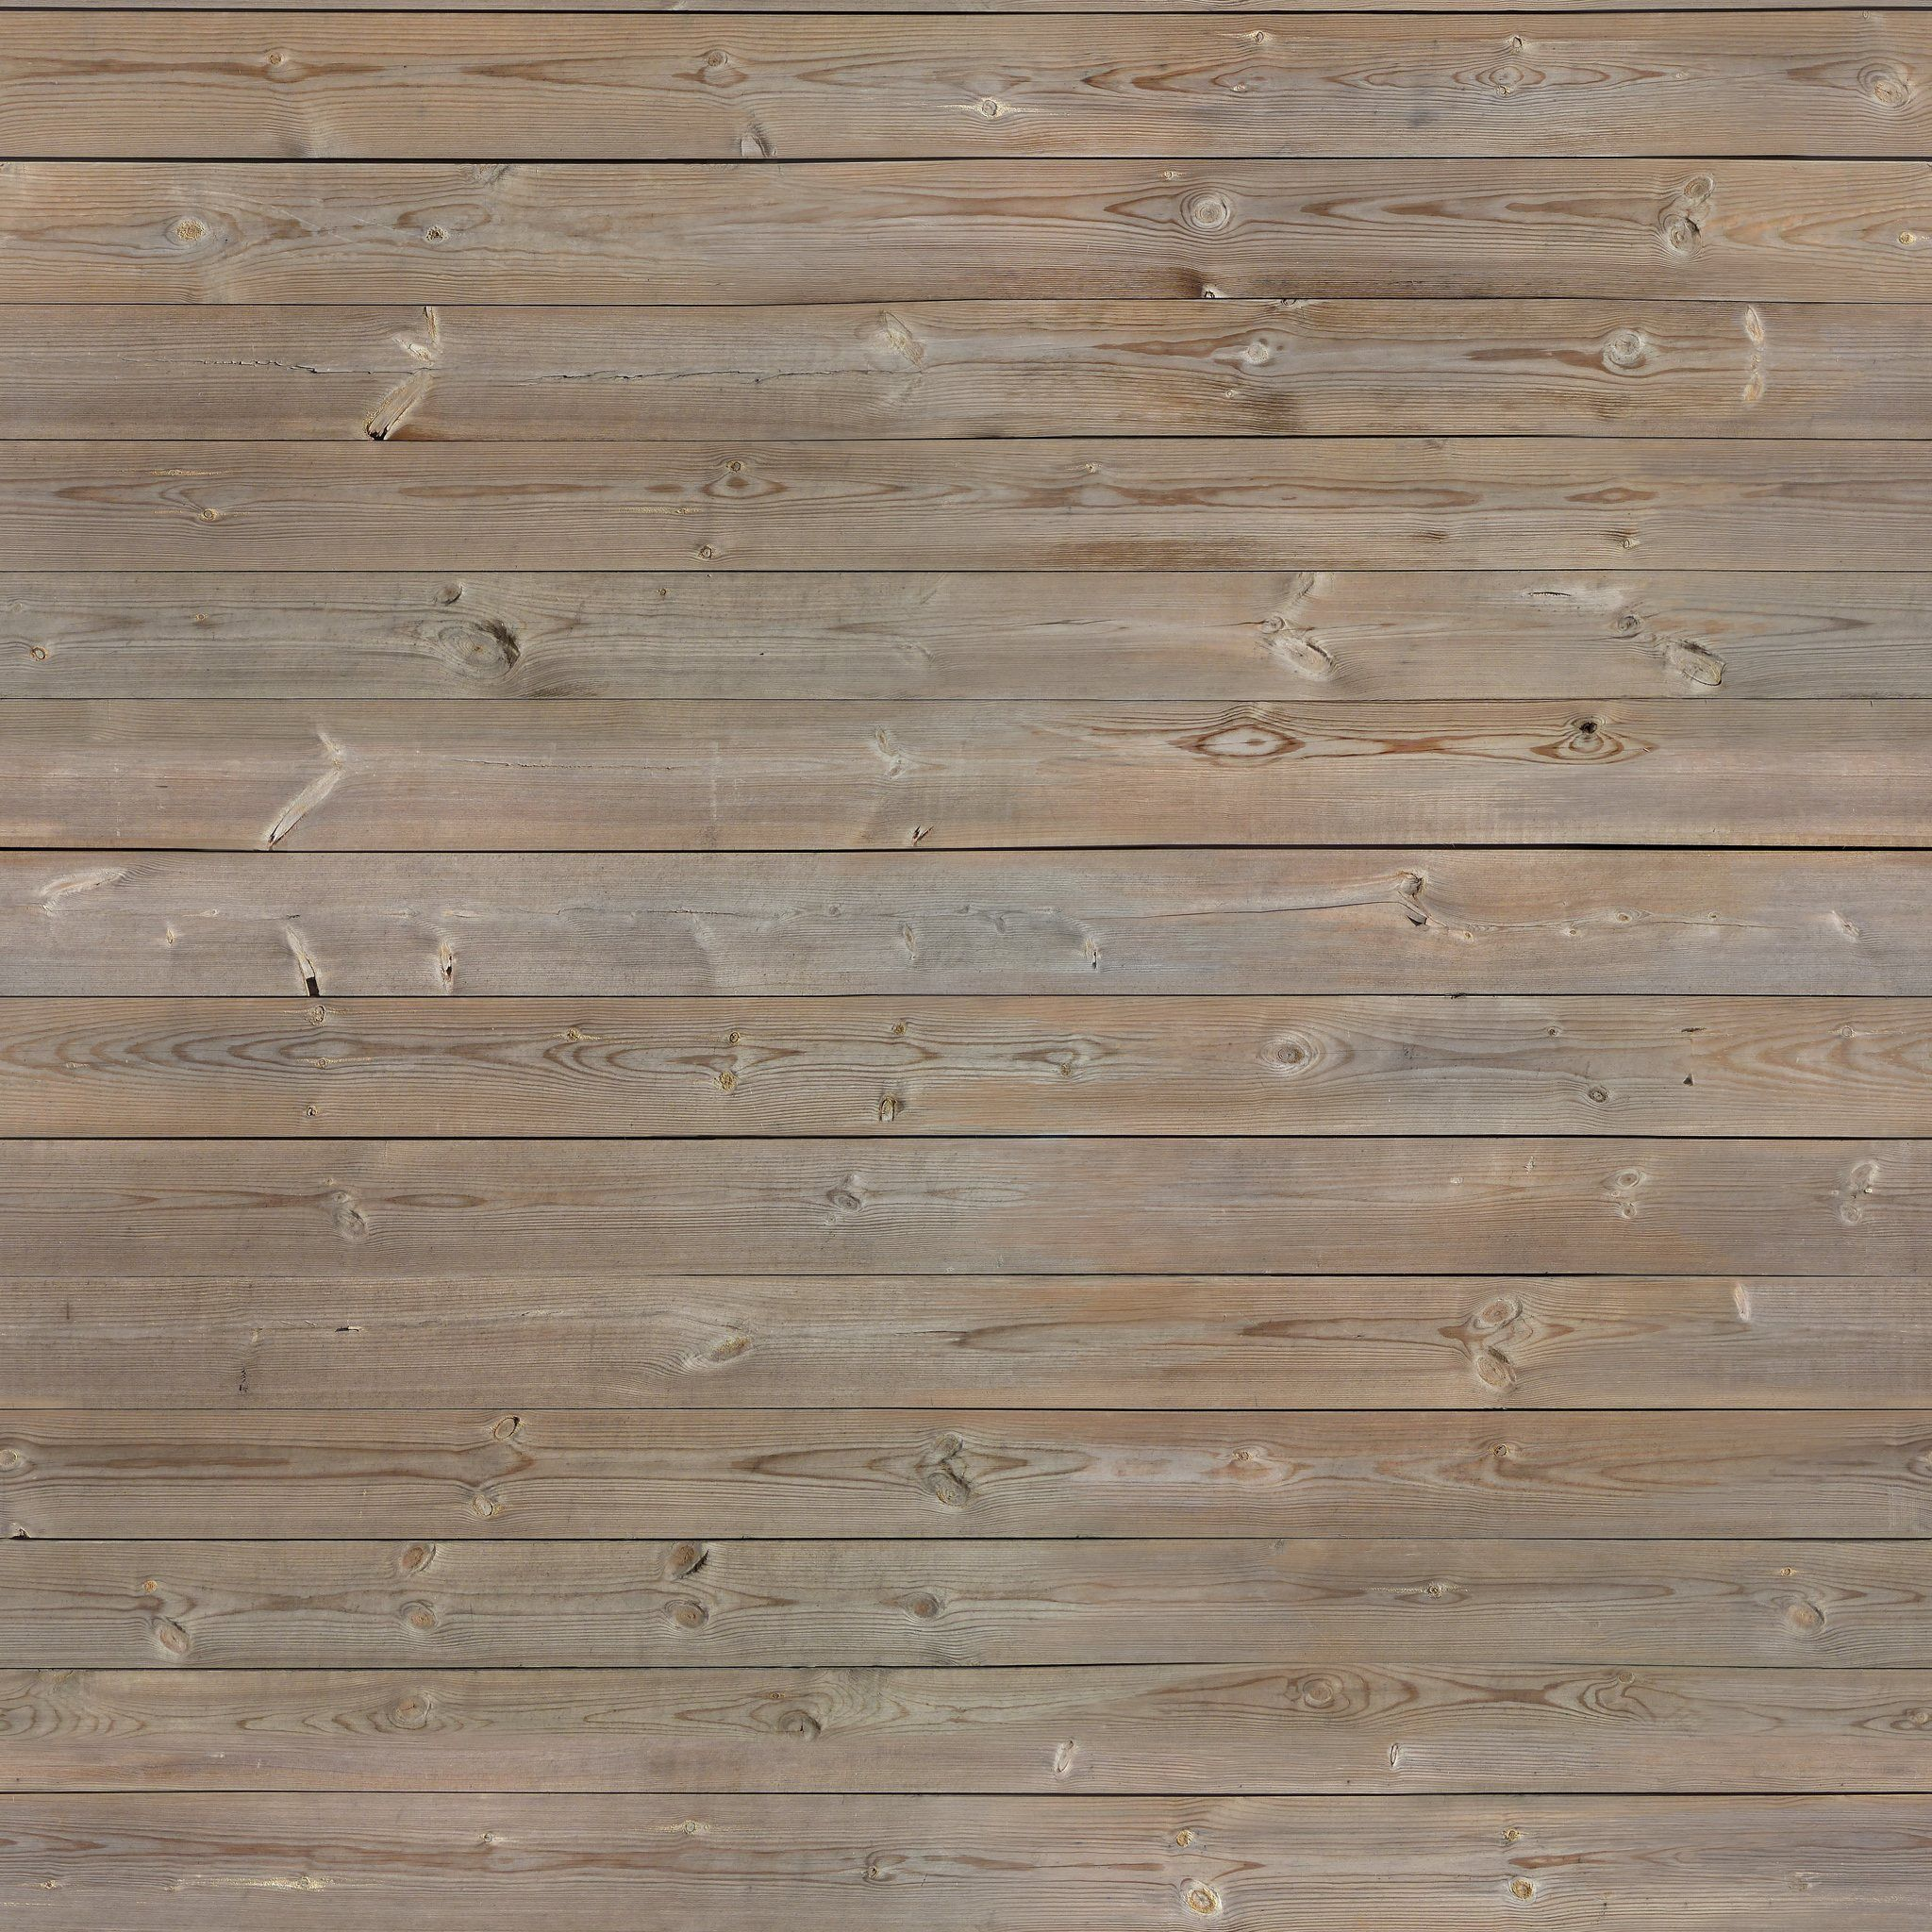 Rough Wood Texture Seamless Wood Texture Seamless Wood Texture Rough Wood